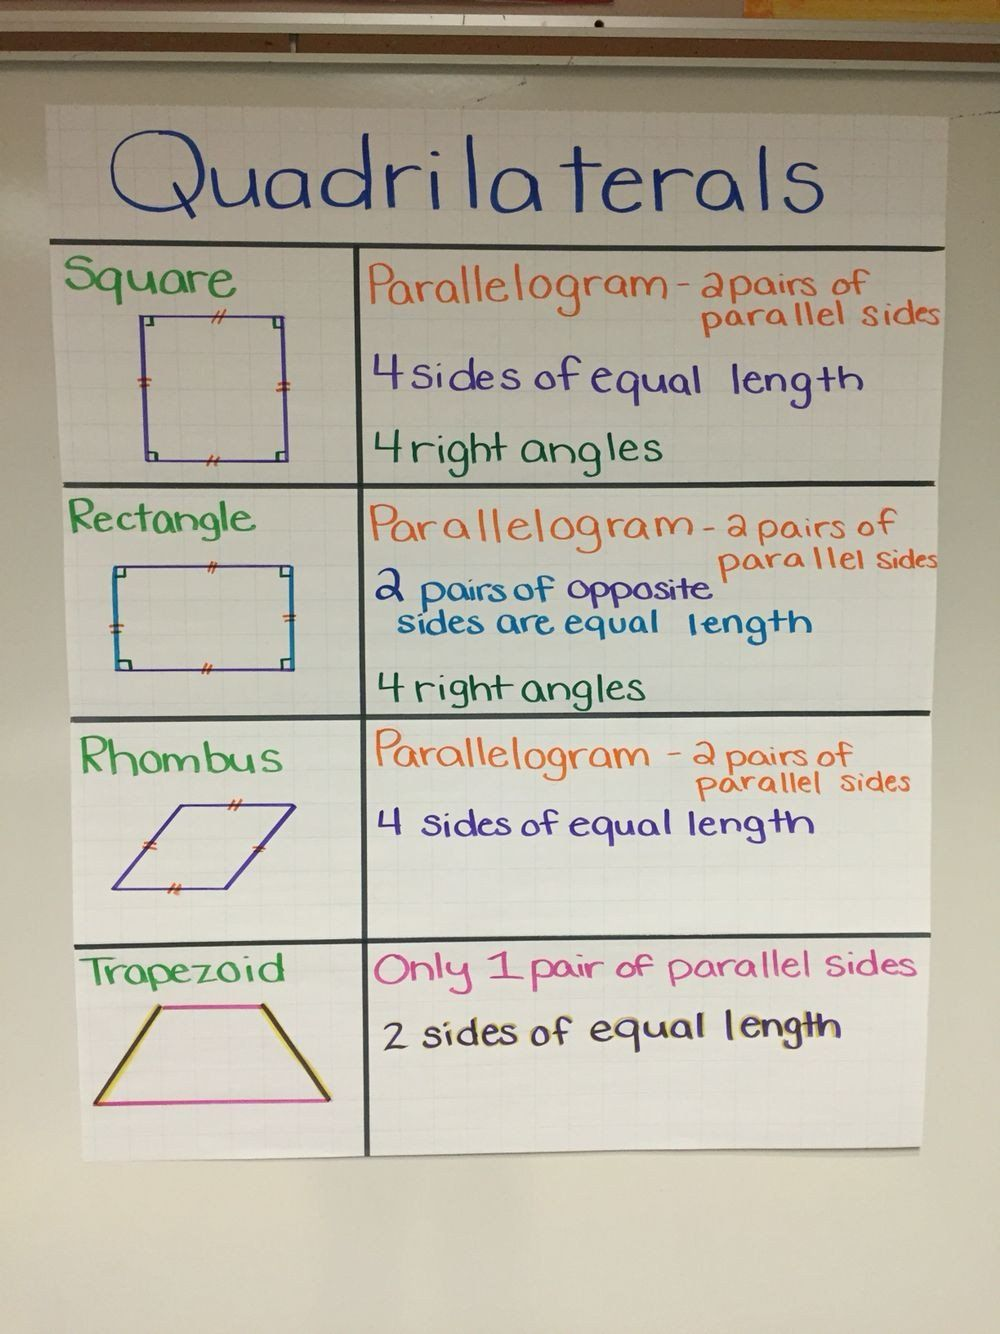 Classifying Quadrilaterals Worksheets 4th Grade Popsugar In 2020 Teaching Geometry Math Charts Math Anchor Charts